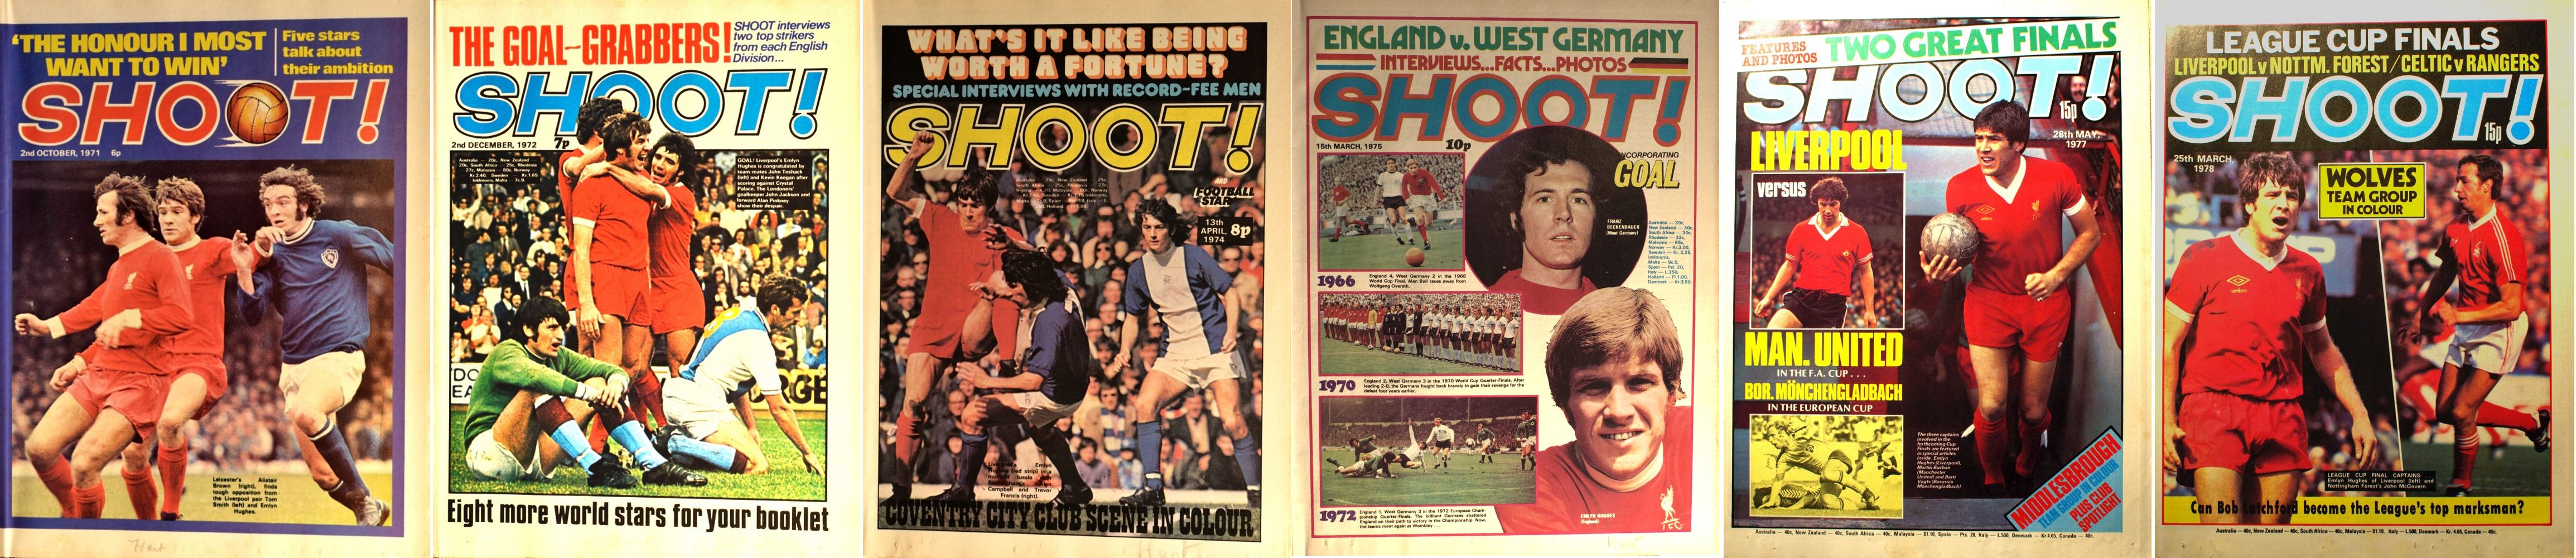 Emlyn Hughes on the cover of Shoot! 1971-1978